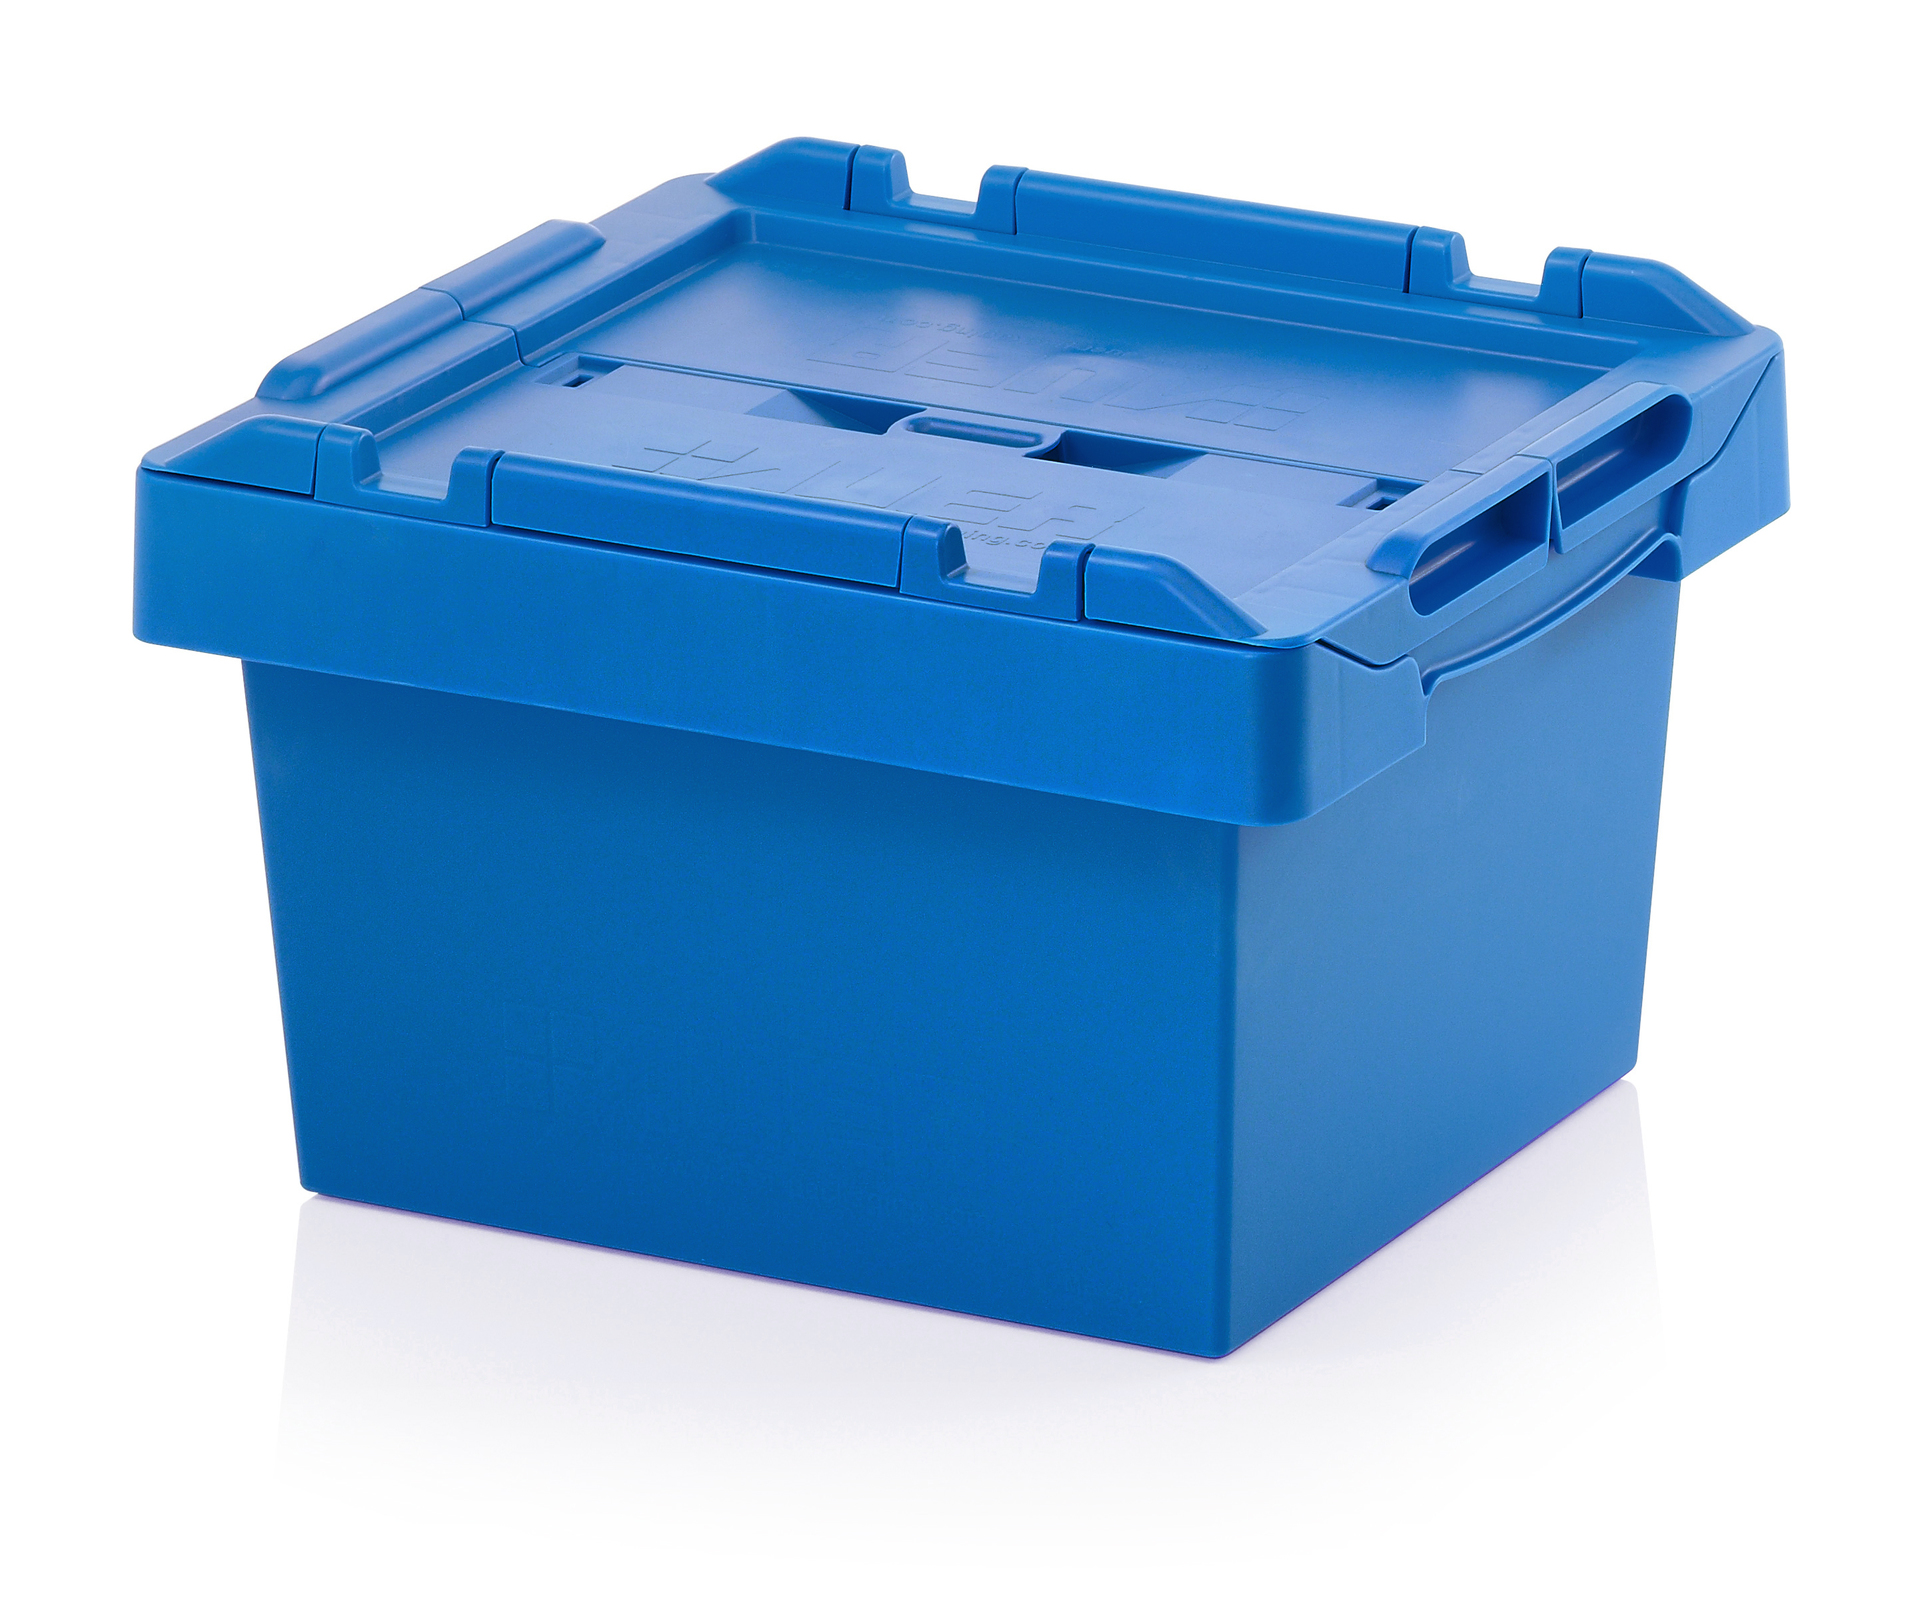 RC4220L_1 Reusable Containers - Plastic Mouldings Northern